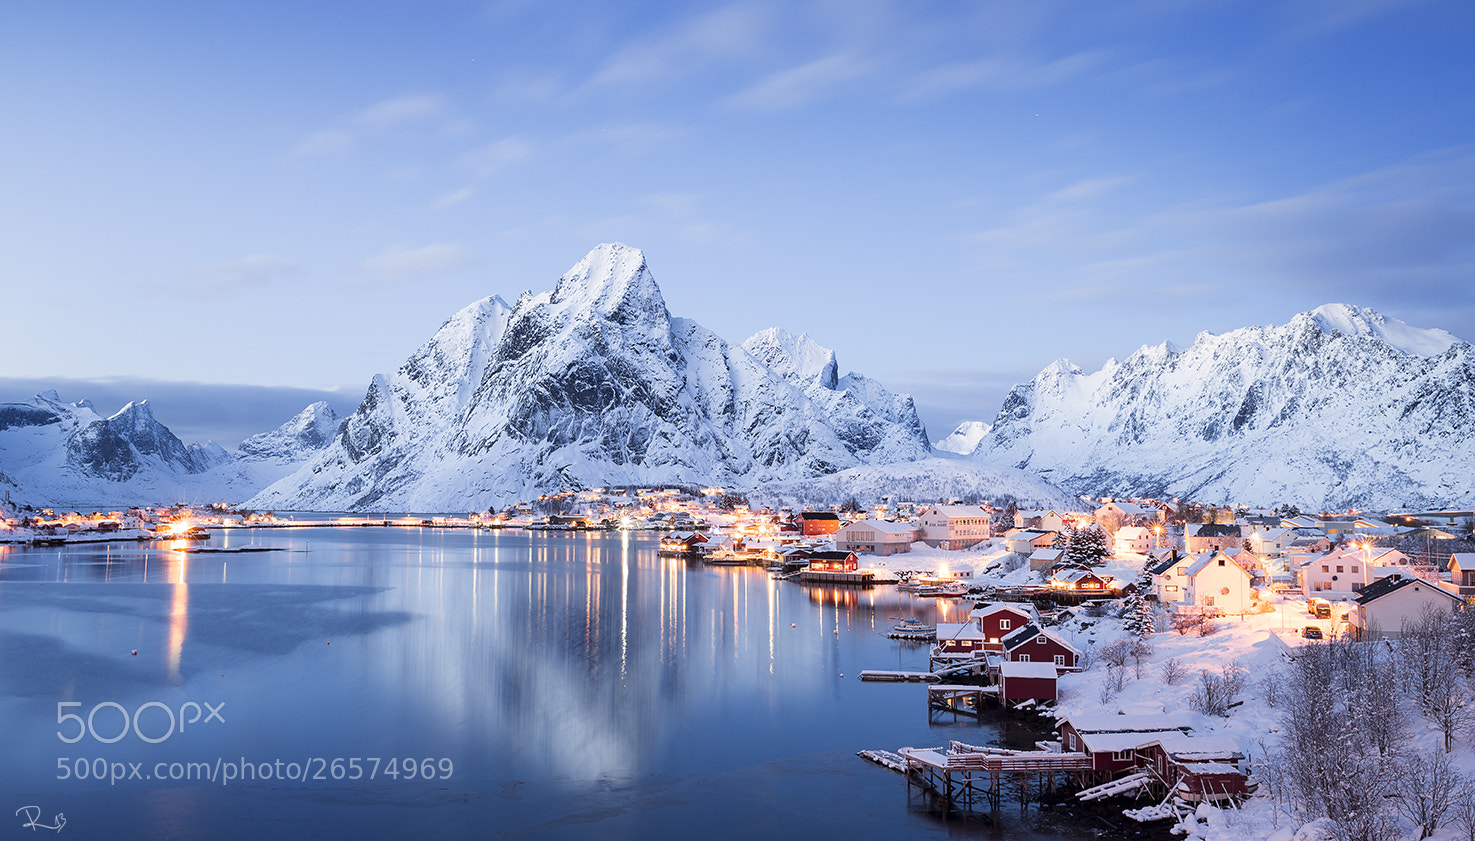 Photograph Blue Reine by Felix Röser on 500px